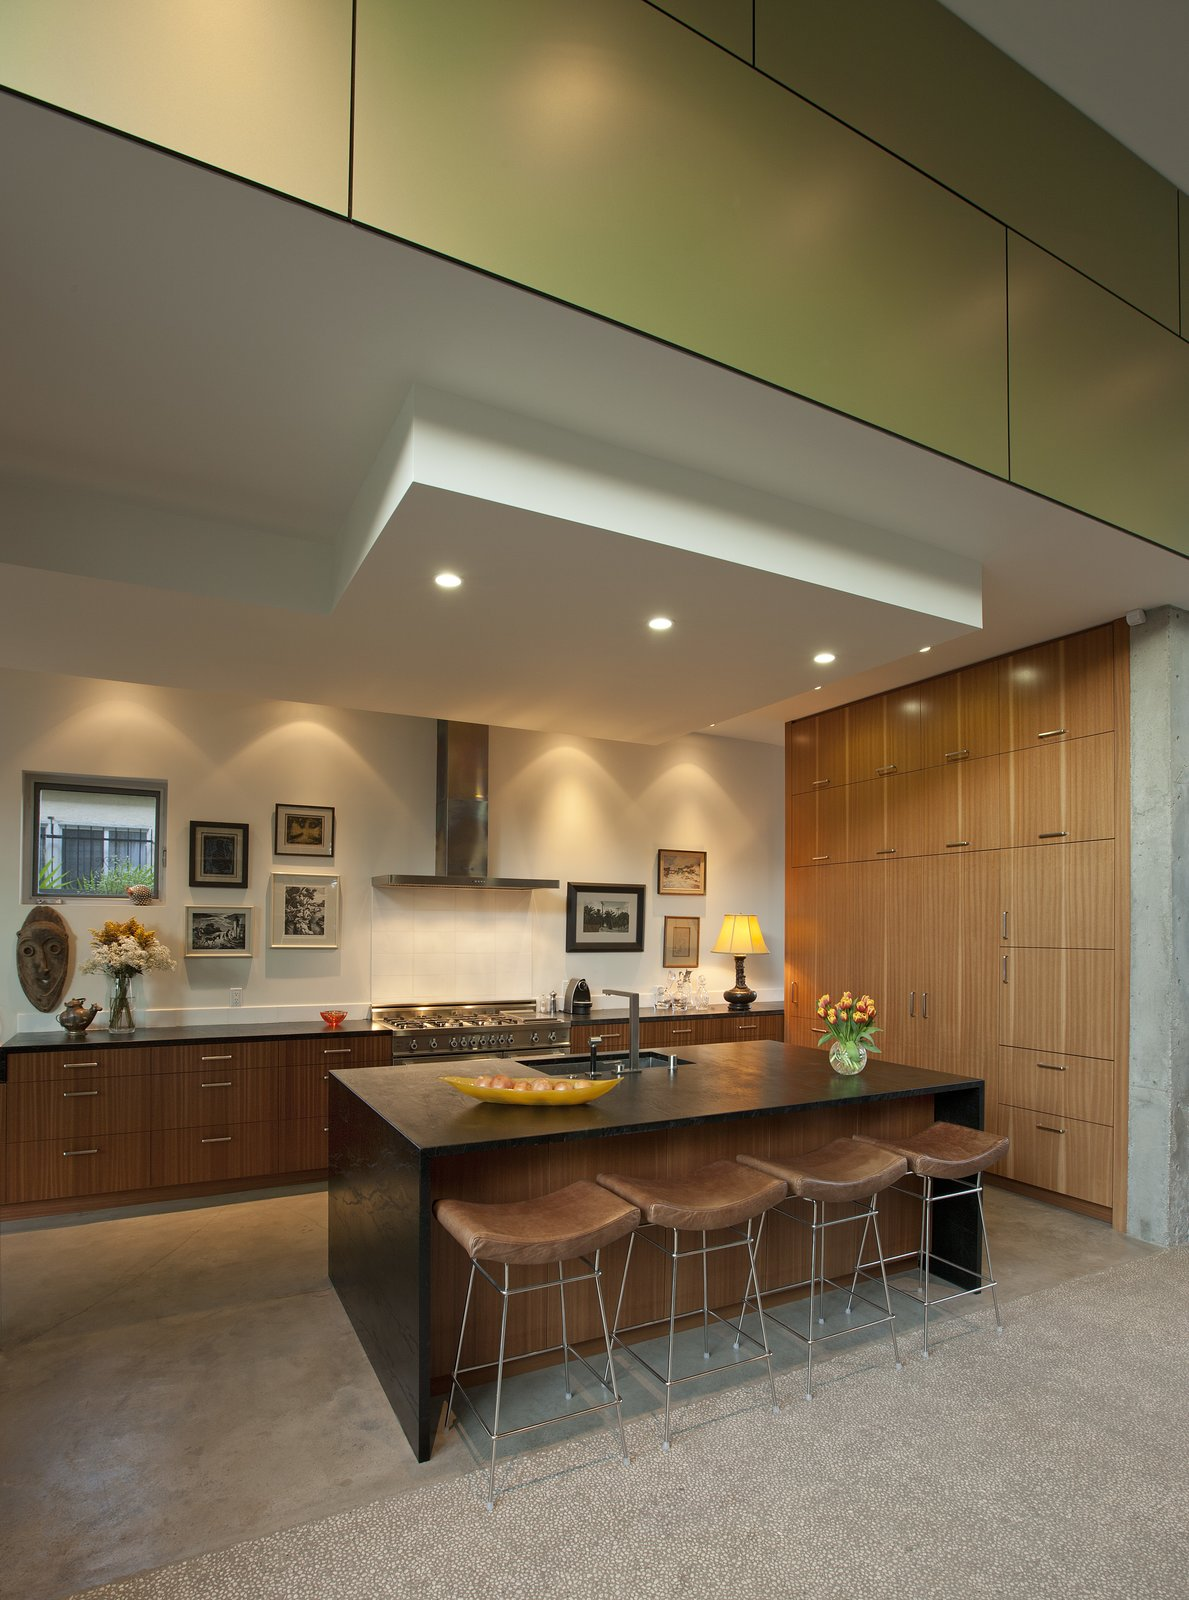 The Mid-Century style kitchen is recessed, framed in the same green Trespa panels on the exterior of the home, further incorporating an indoor-outdoor setup that is popular in Venice Beach.   Goodman Residence by Abramson Teiger Architects